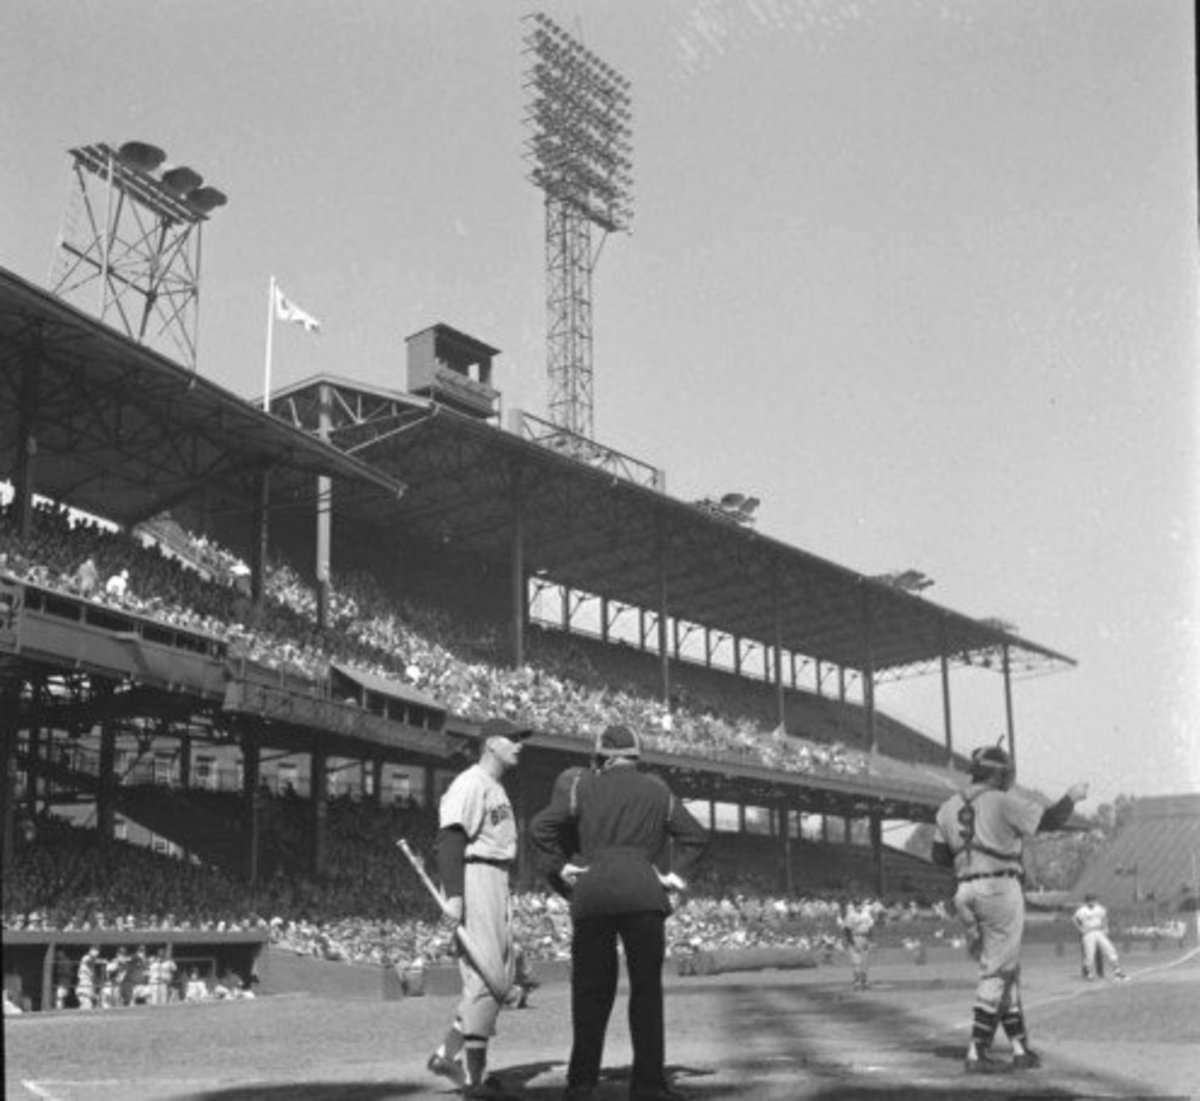 Griffith Stadium; (the second) Home of the original Washington Senators (until 1961)